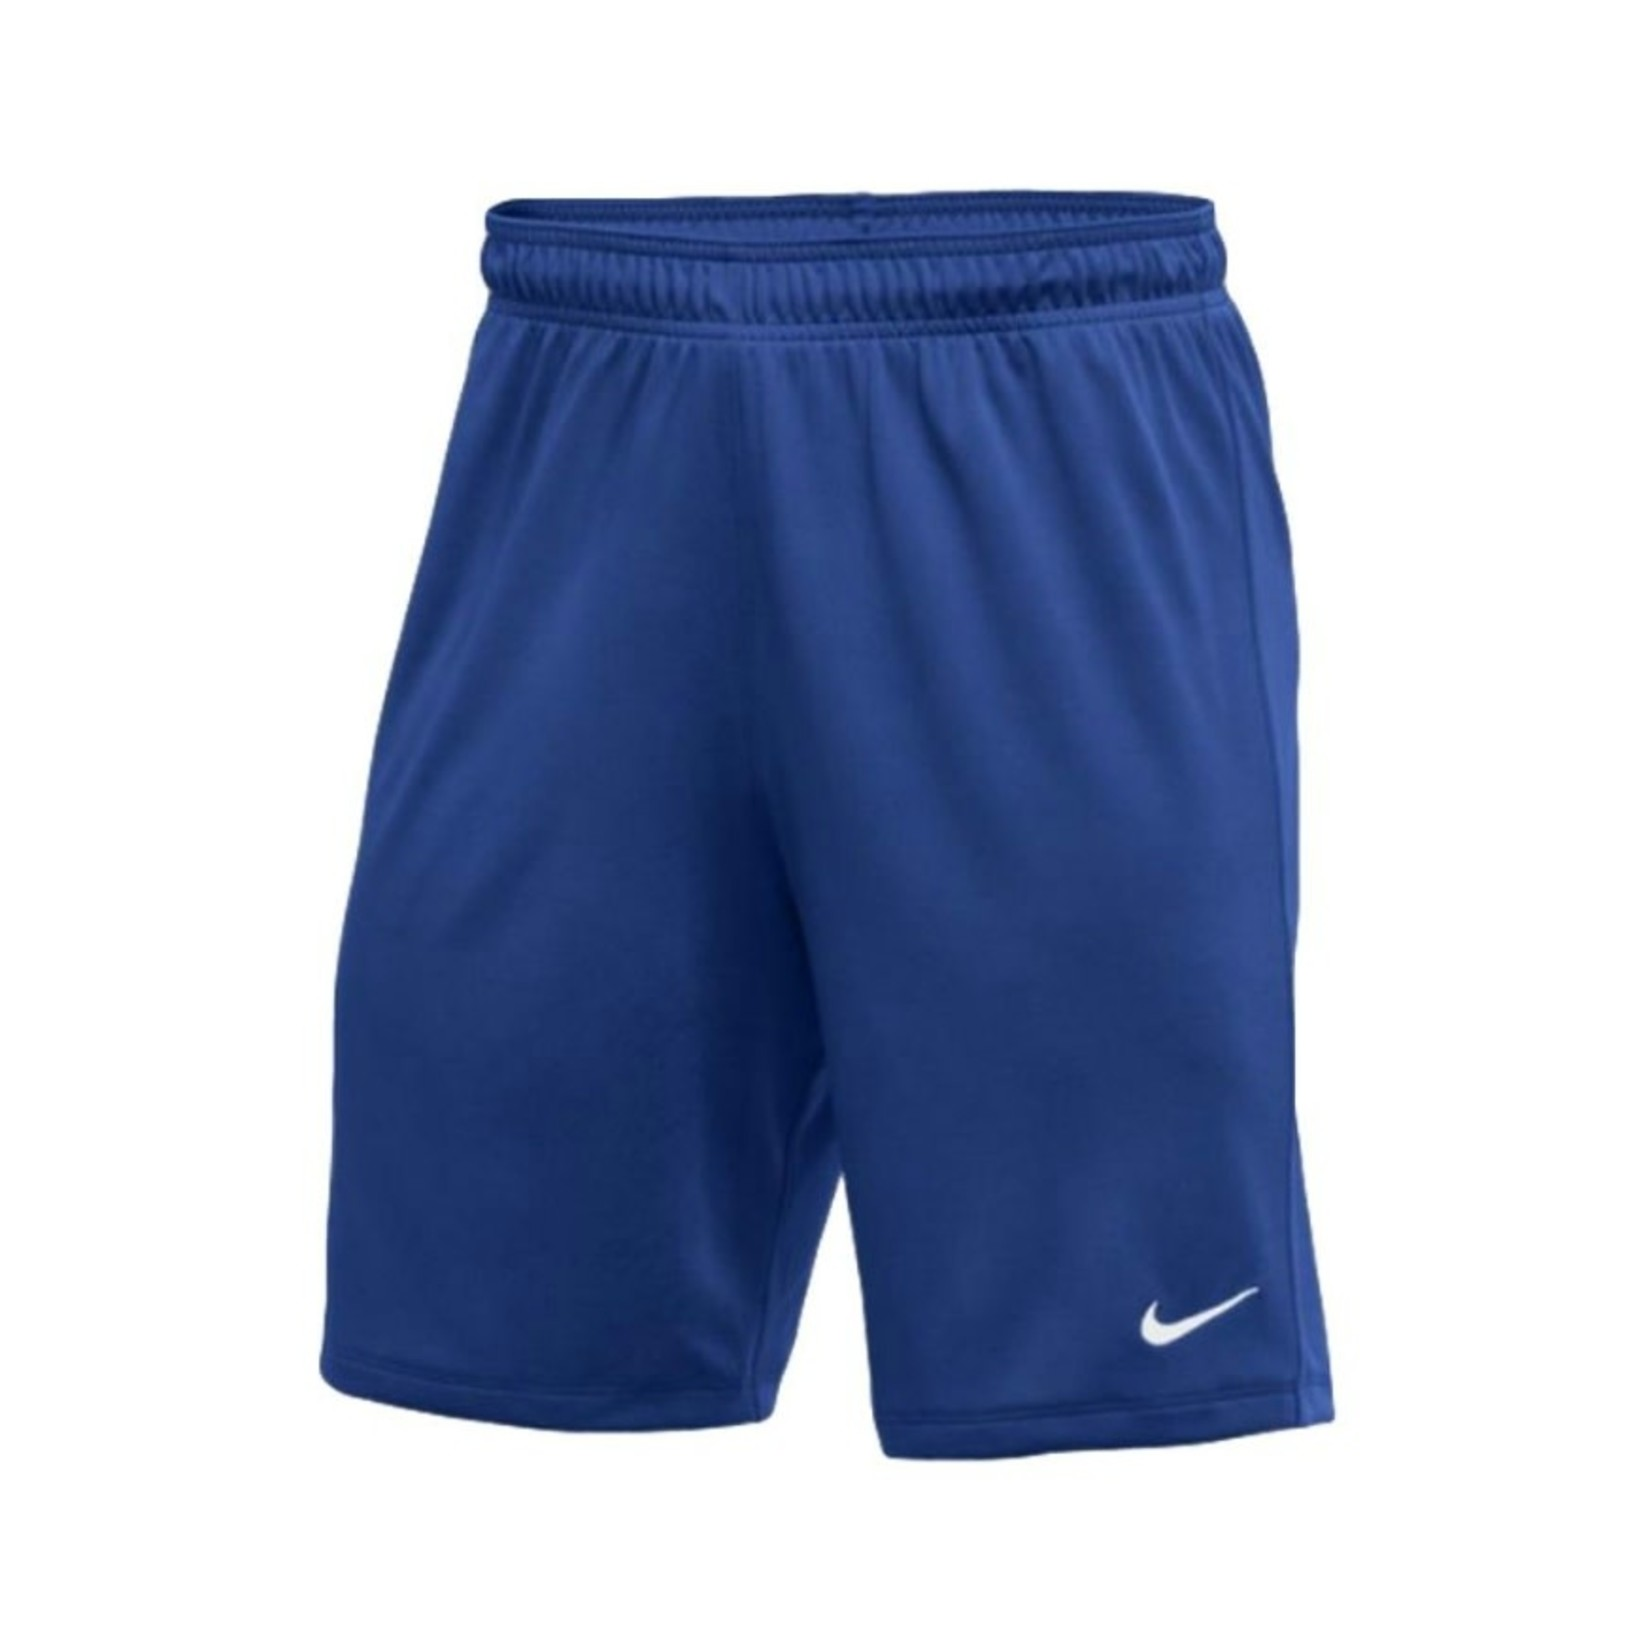 NIKE PARK 2 SHORT YOUTH